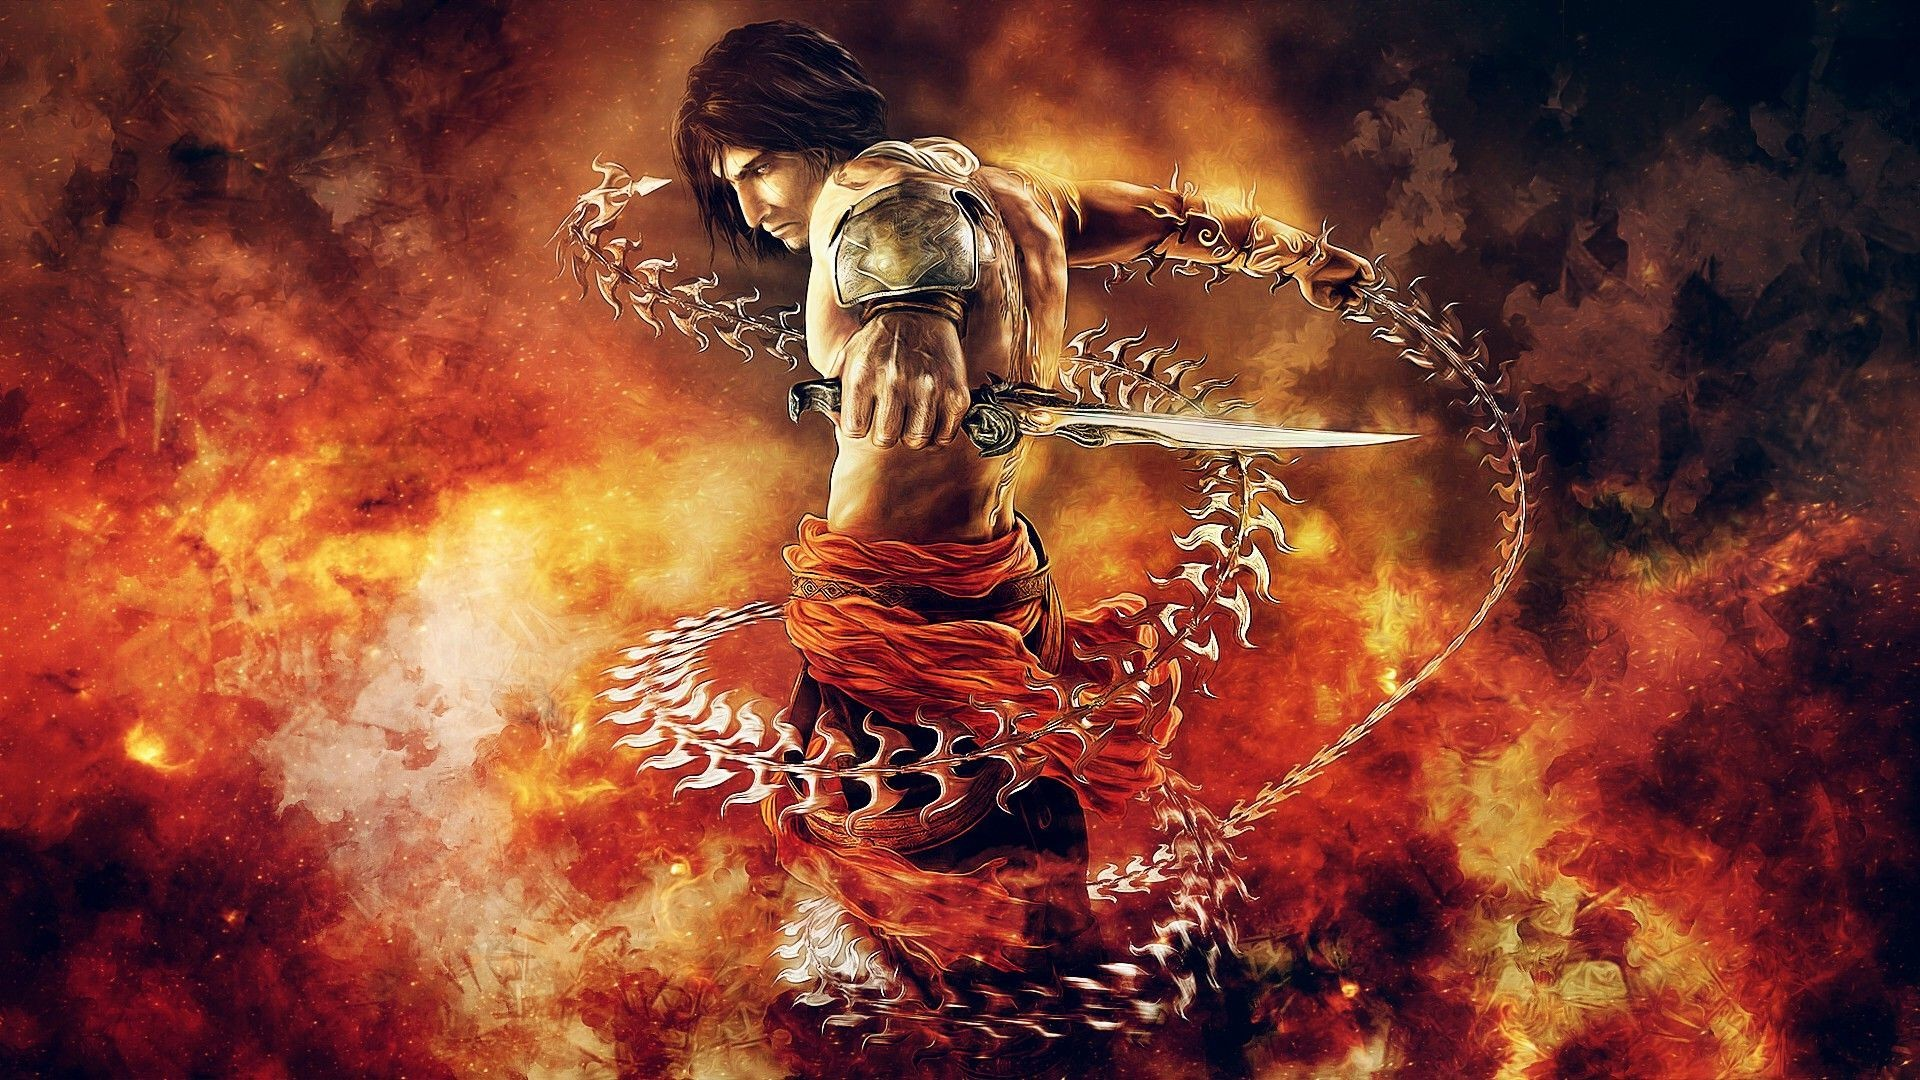 Prince of Persia: Warrior Within wallpaper #26715